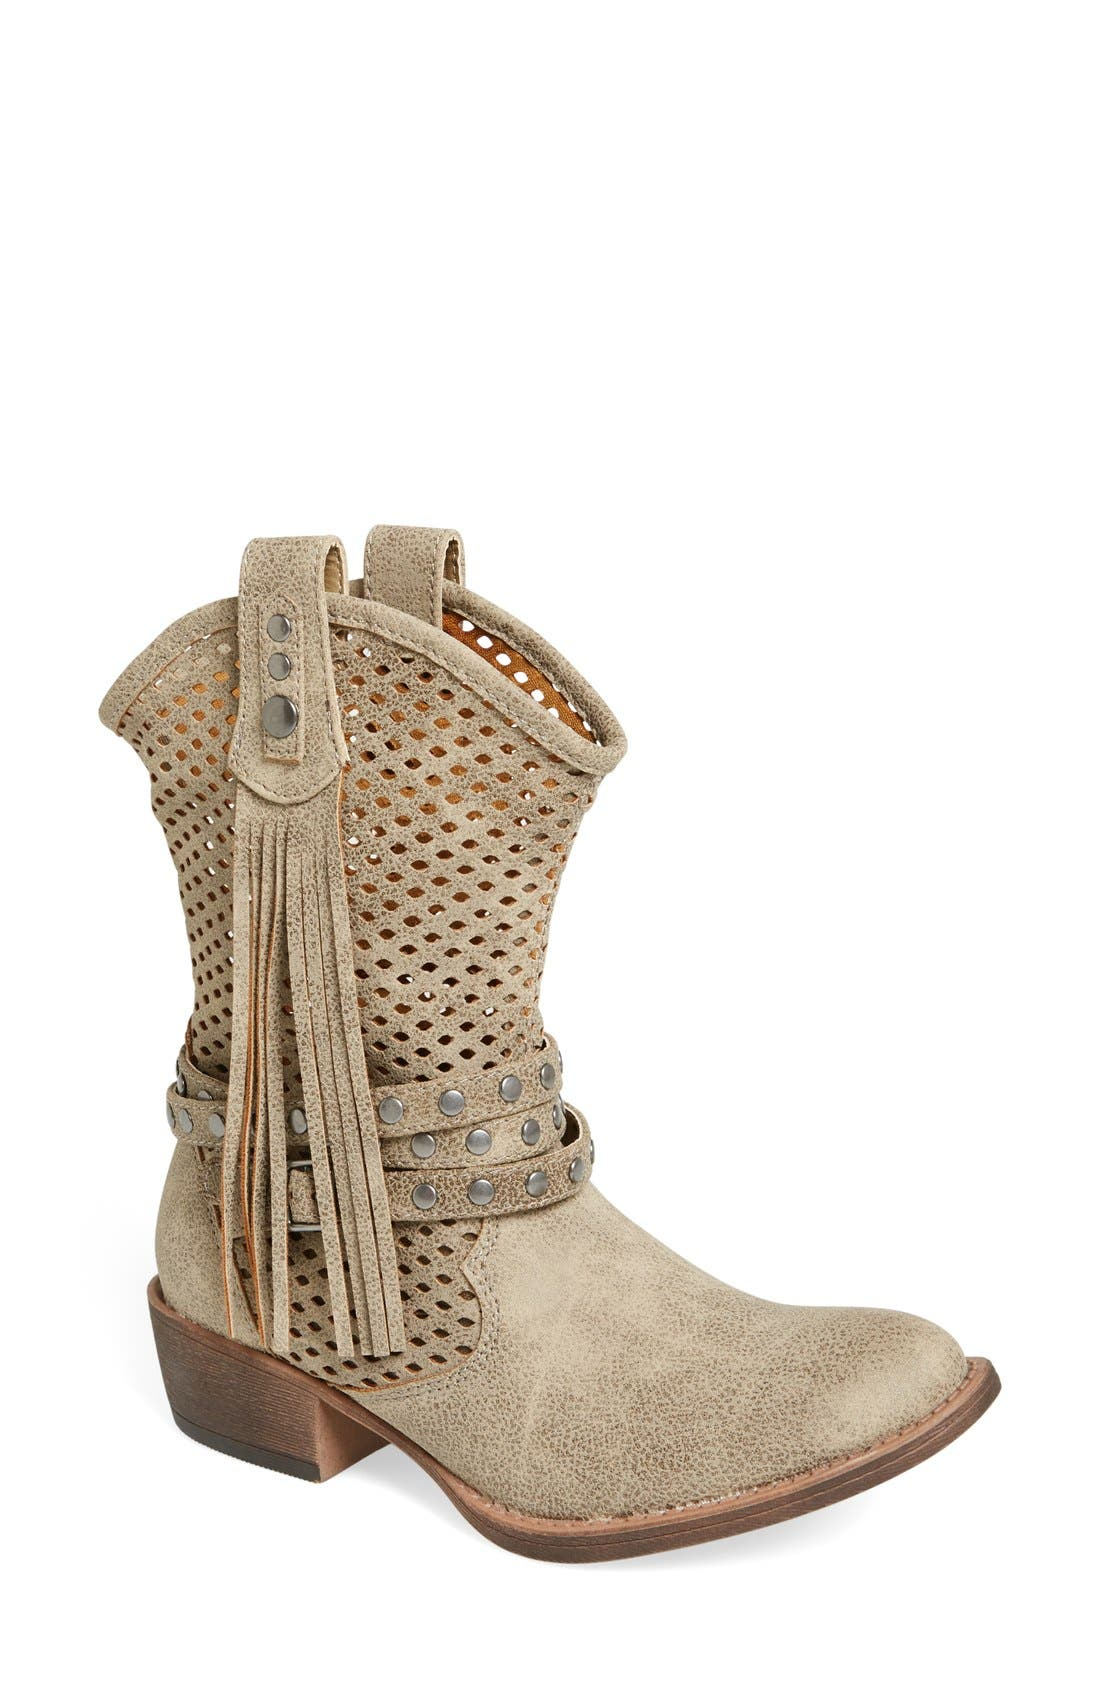 Alternate Image 1 Selected - Coconuts by Matisse 'Rawhide' Slouchy Western Boot (Women)